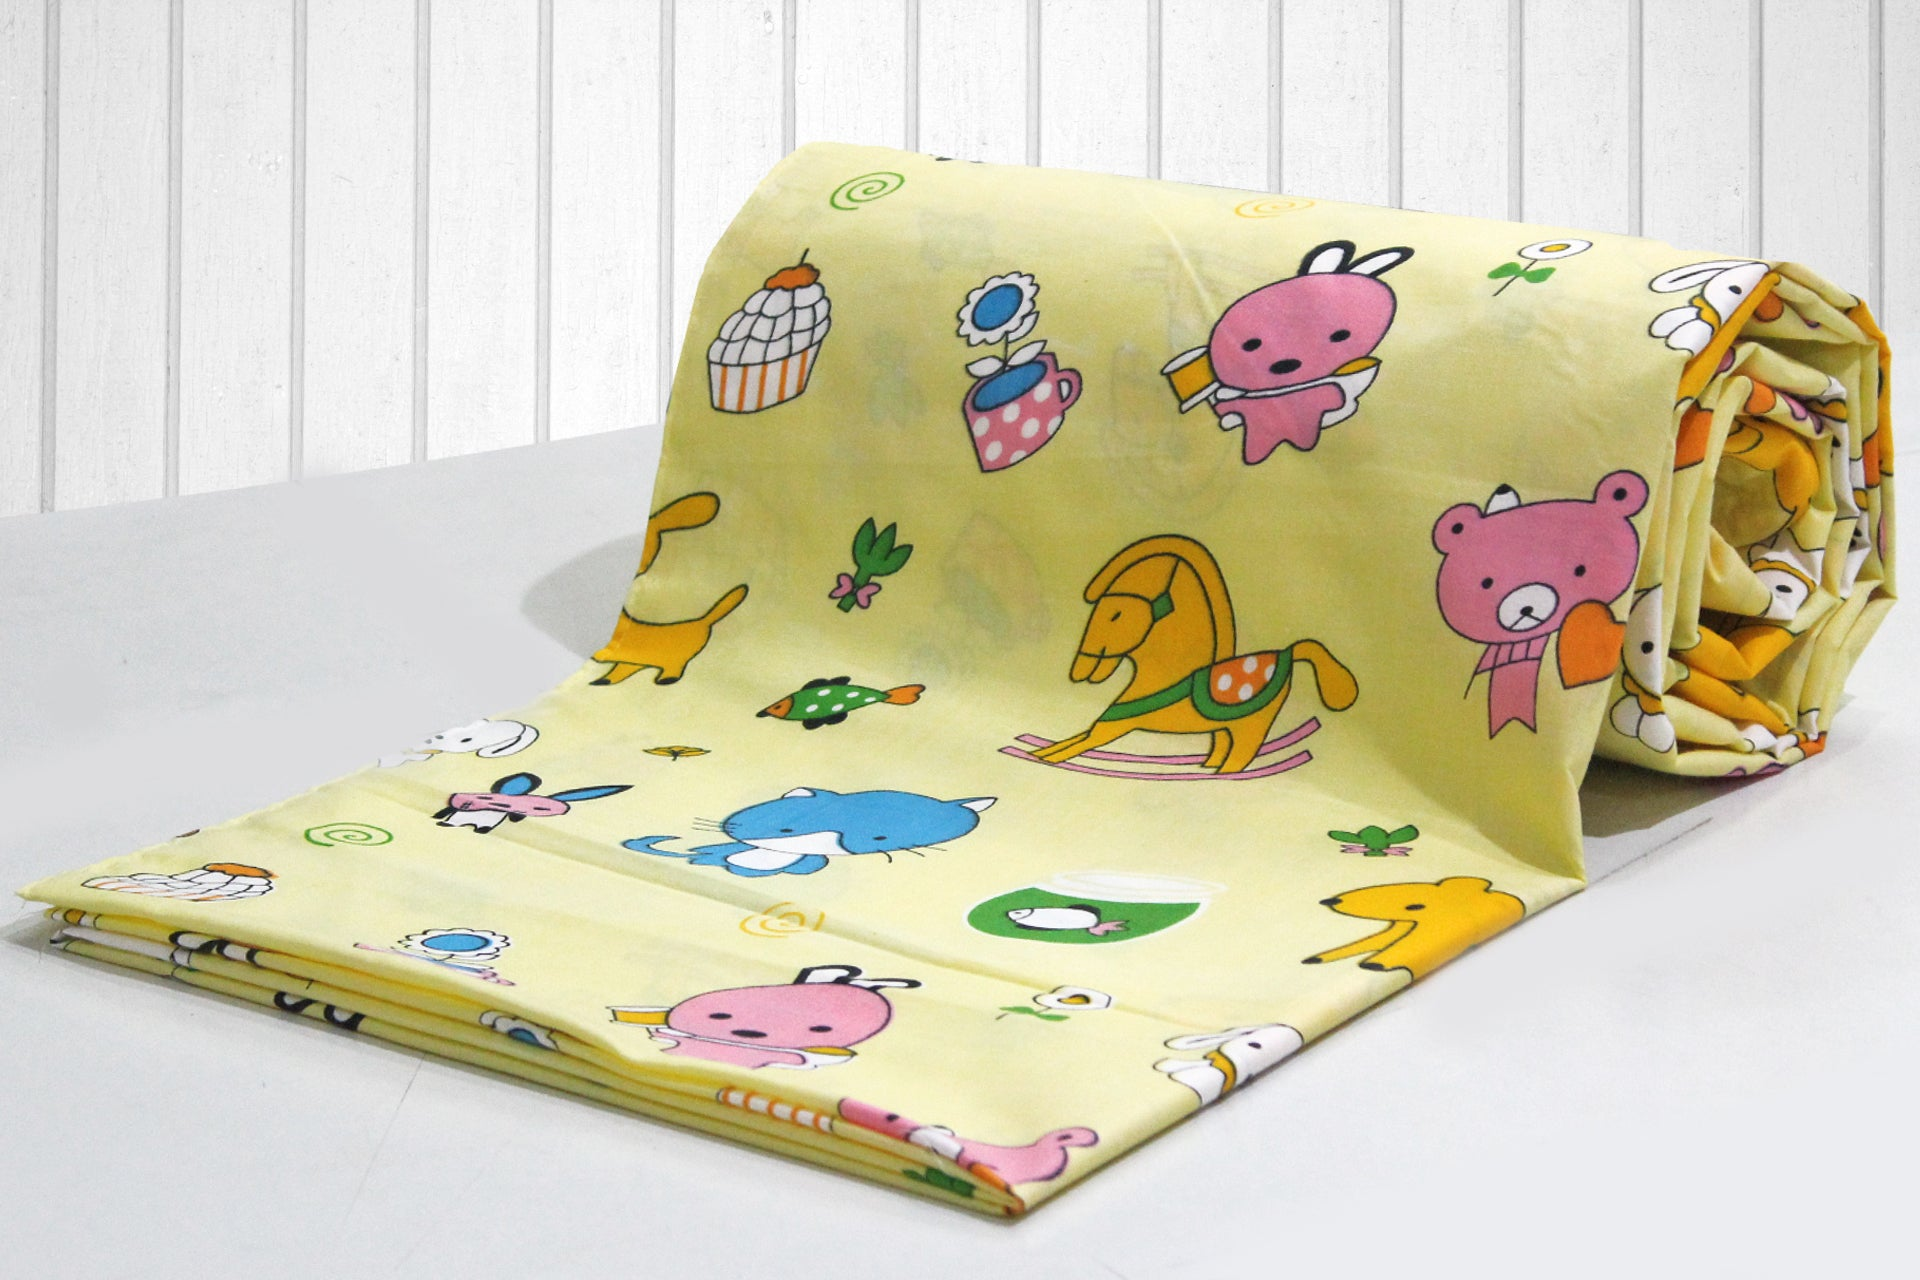 AURAVE Kids Funky Yellow Teddy Print 1 Piece Cotton Duvet Cover/Quilt Cover/Blanket Cover, Single Bed (with Zipper)